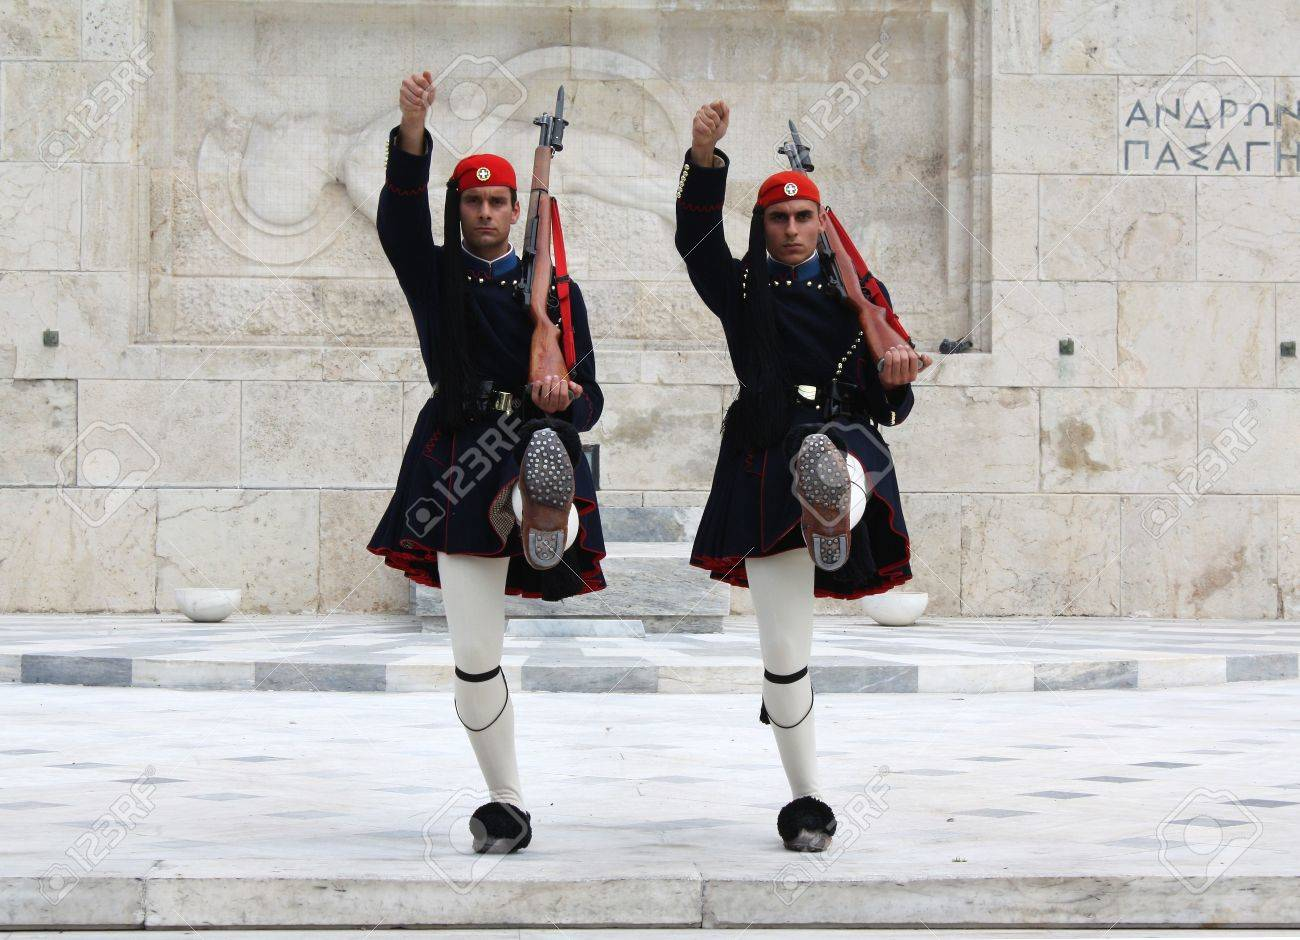 Athens, Greece - April 21, 2009: Evzones (presidential ceremonial guards) in front of the Unknown Soldier's Tomb at the Greek Parliament Building in Athens, opposite Syntagma Square. Stock Photo - 6886552